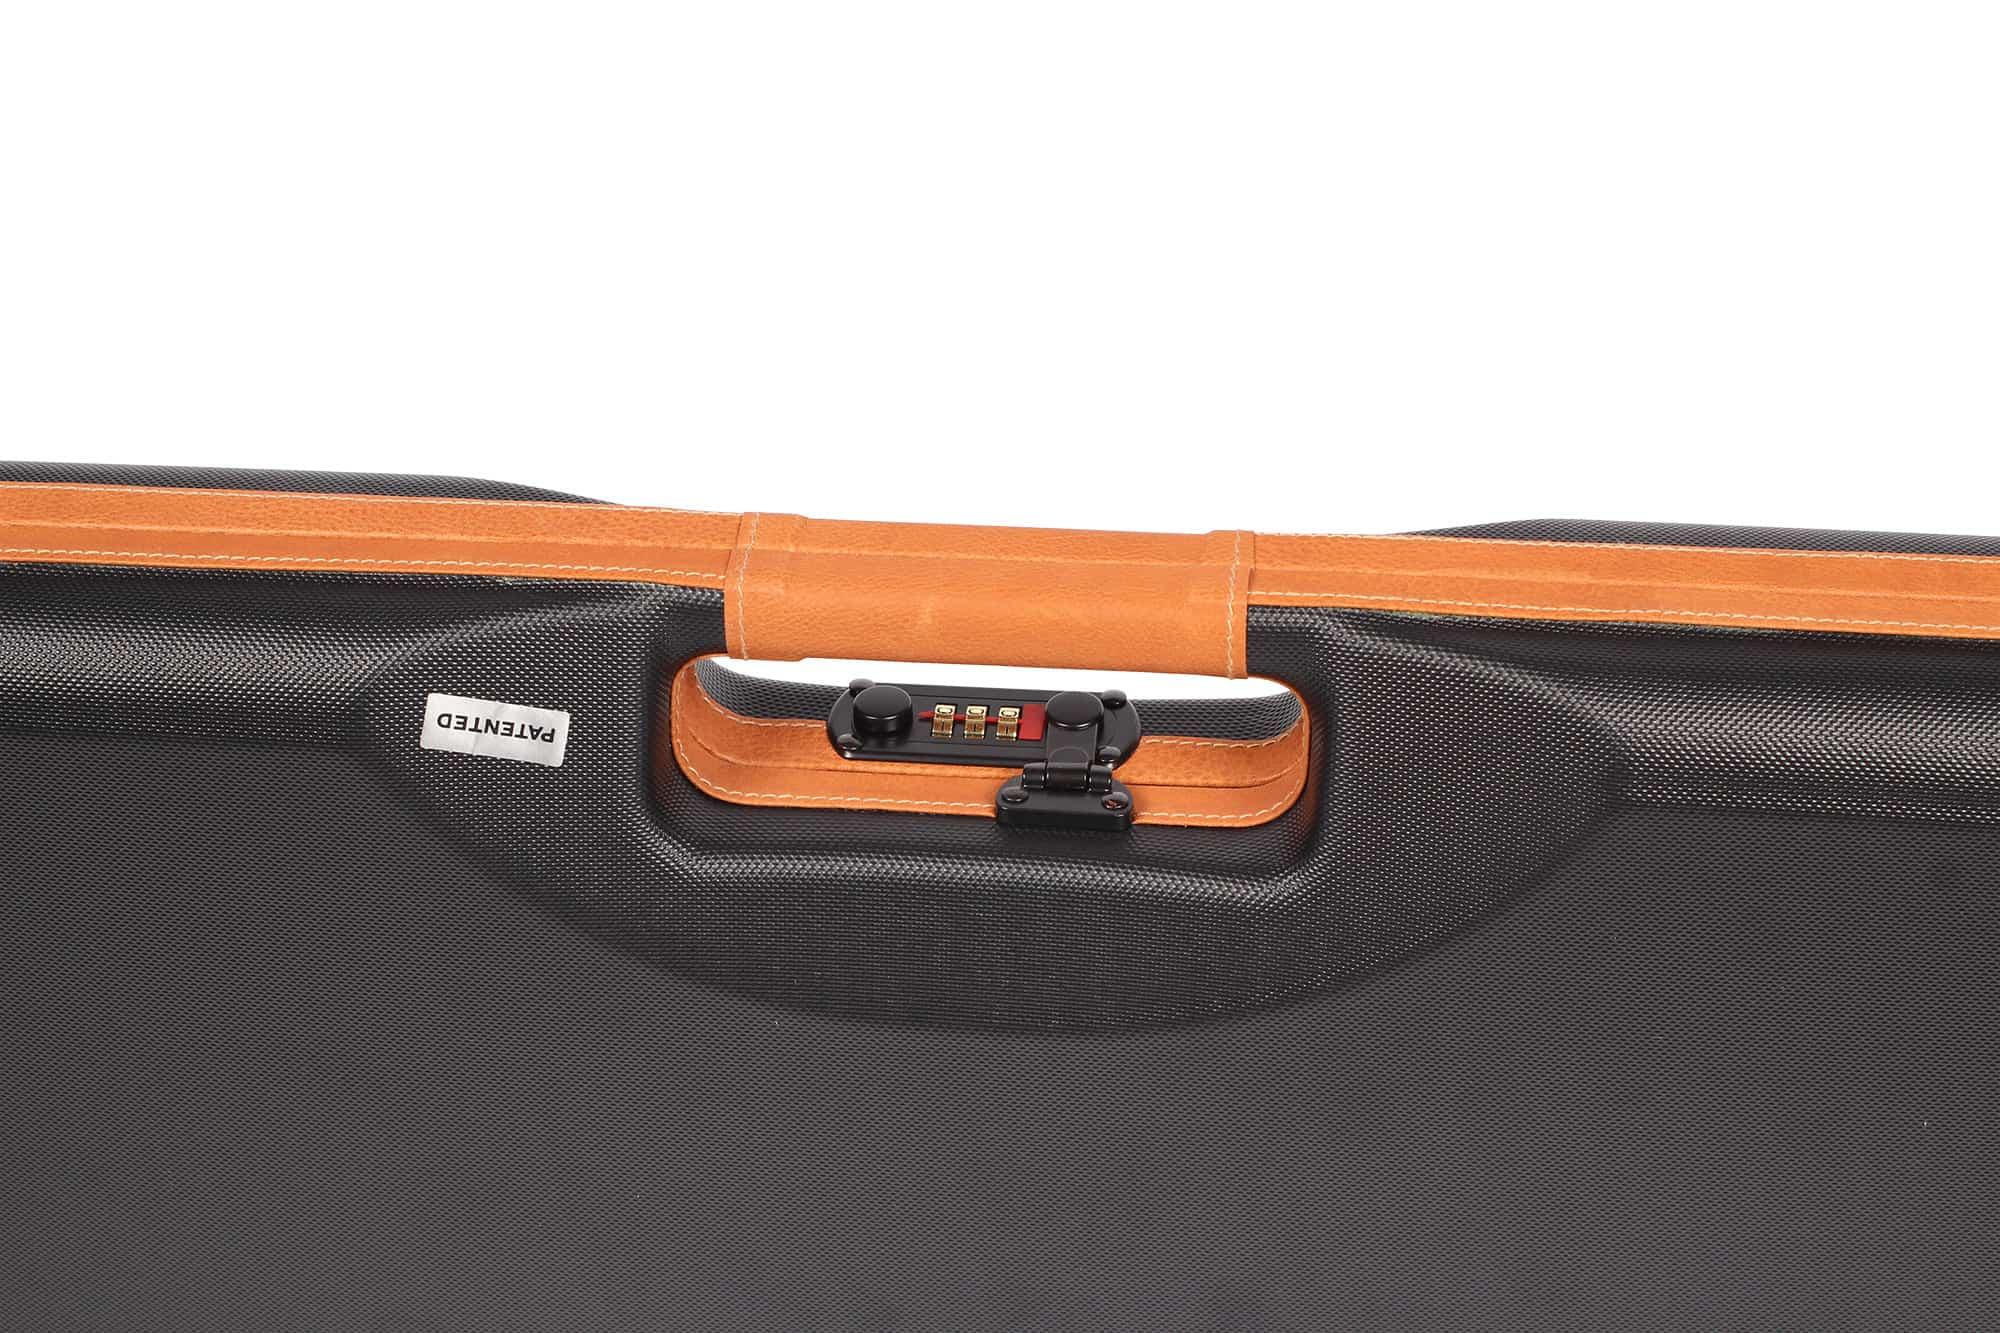 Single scoped rifle hard case